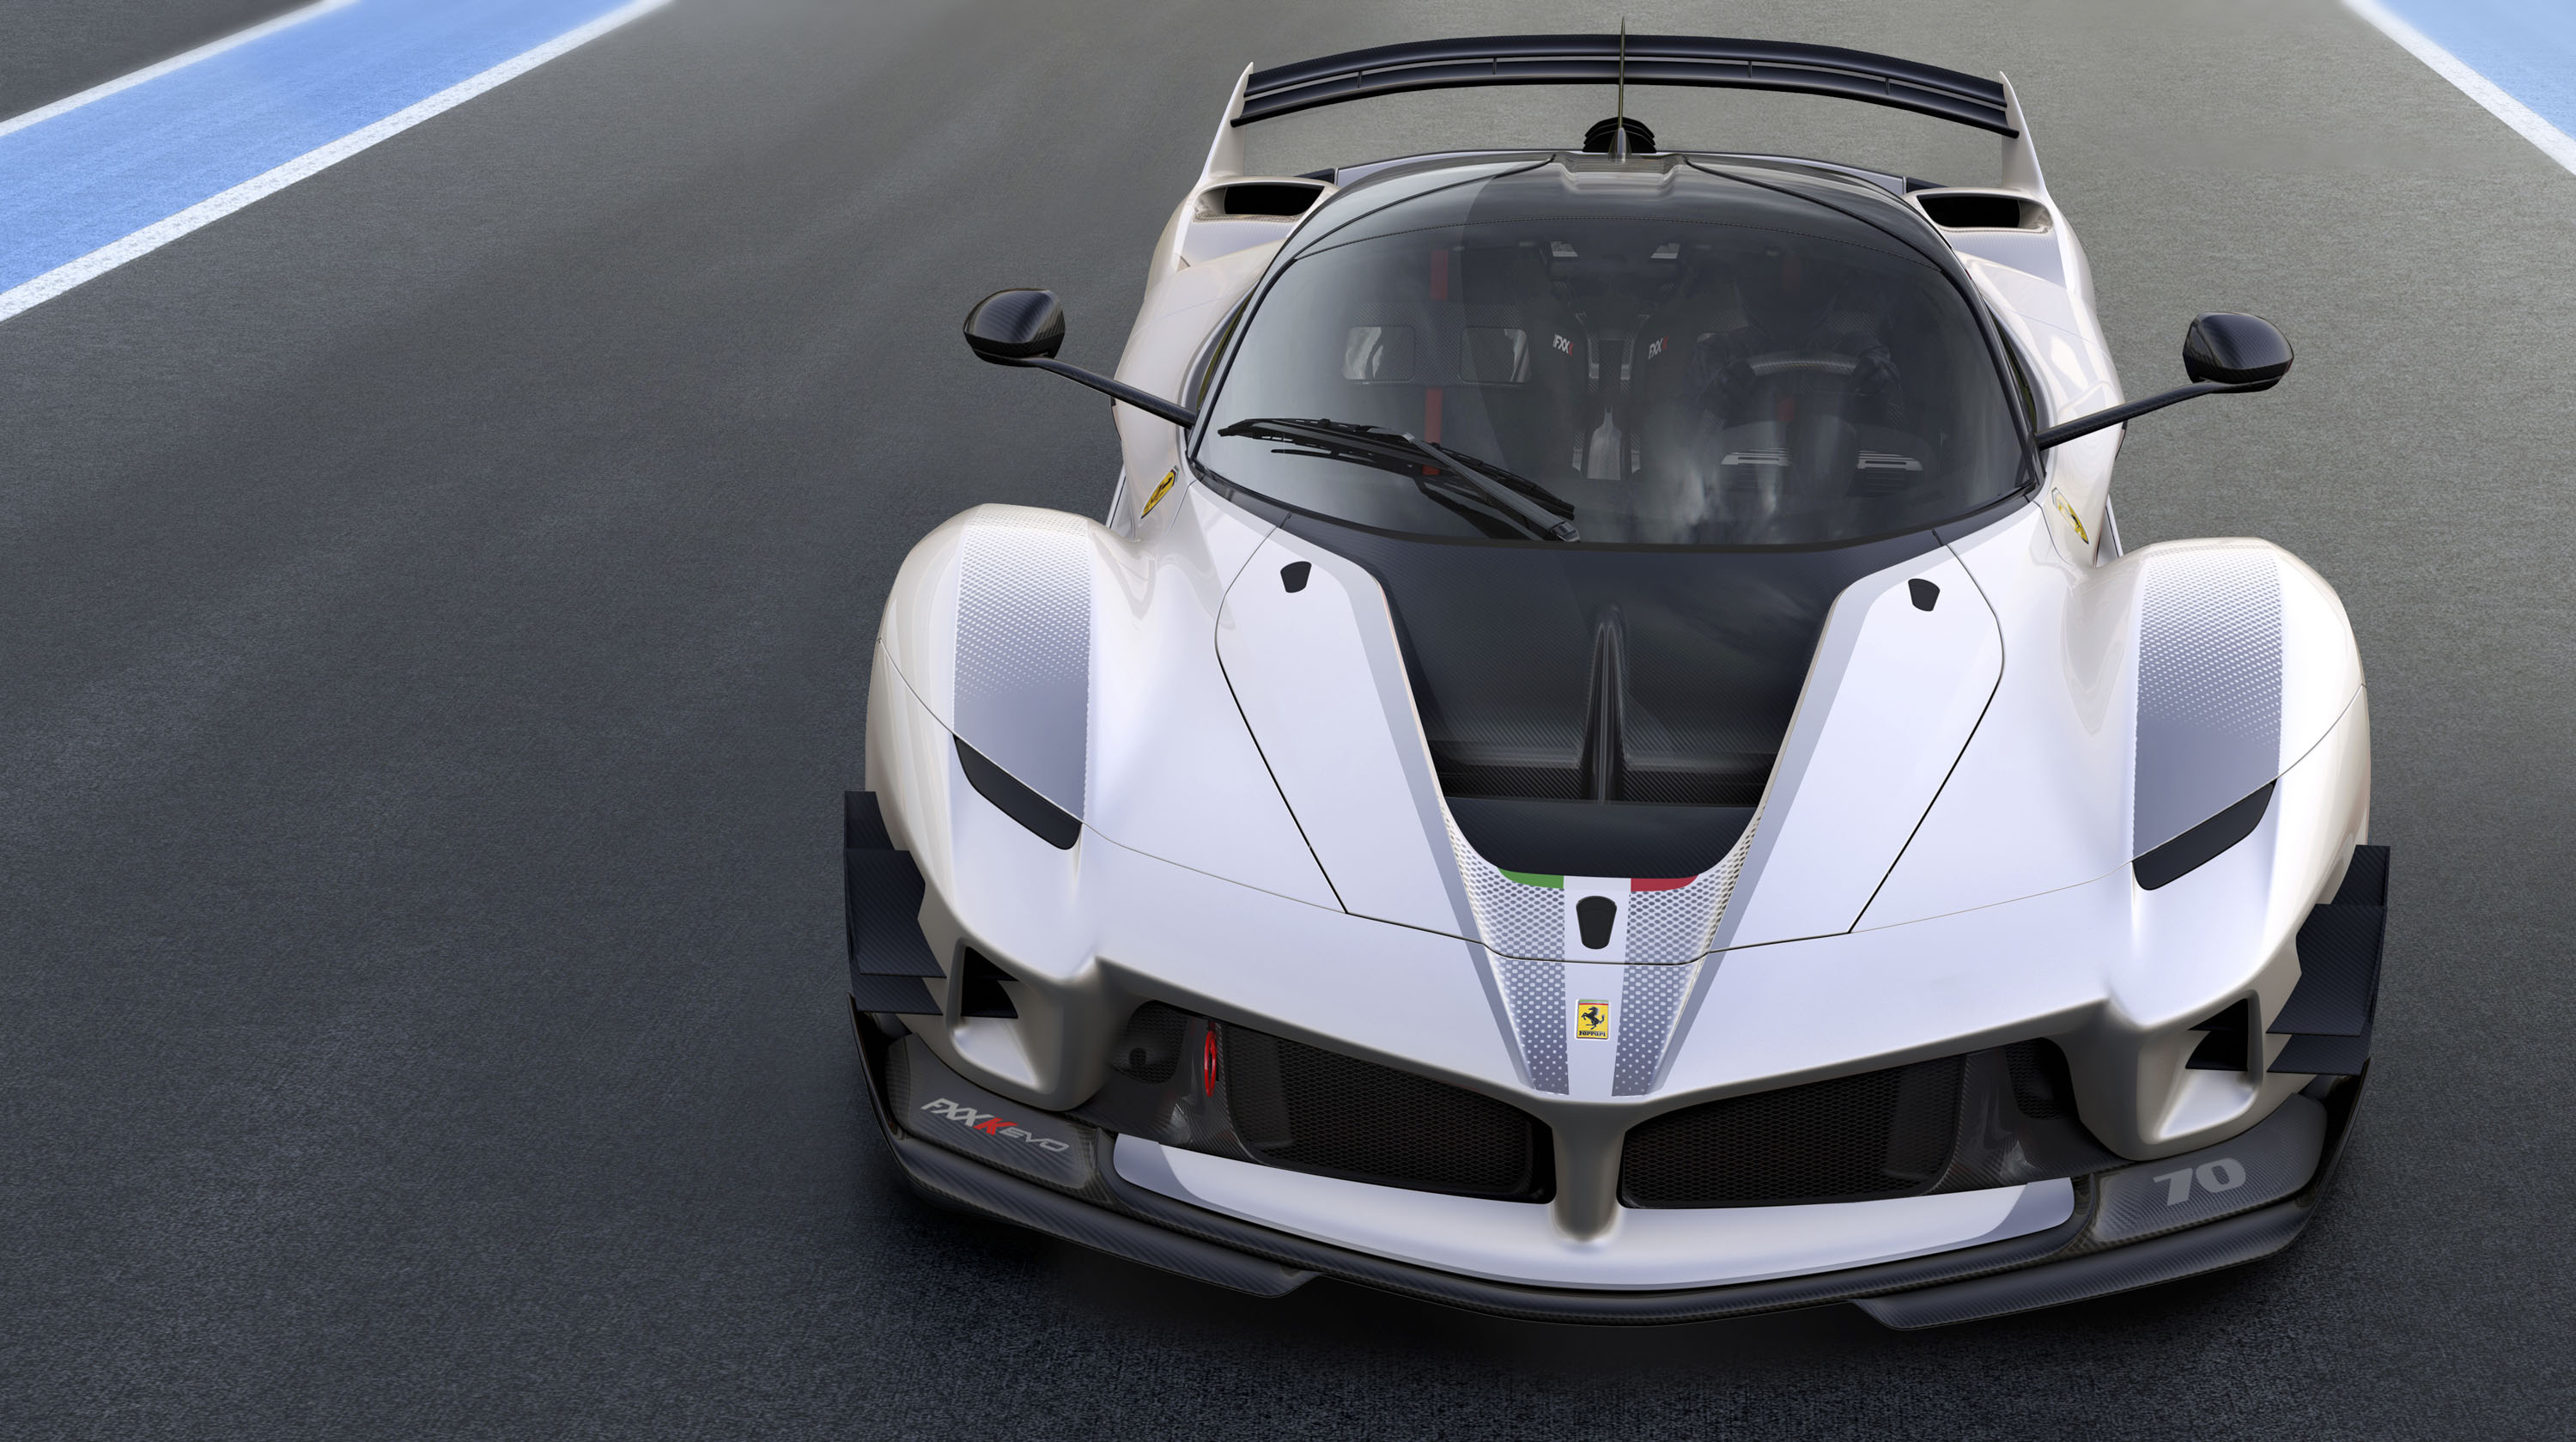 2018 Ferrari Fxx K Evo Top Speed